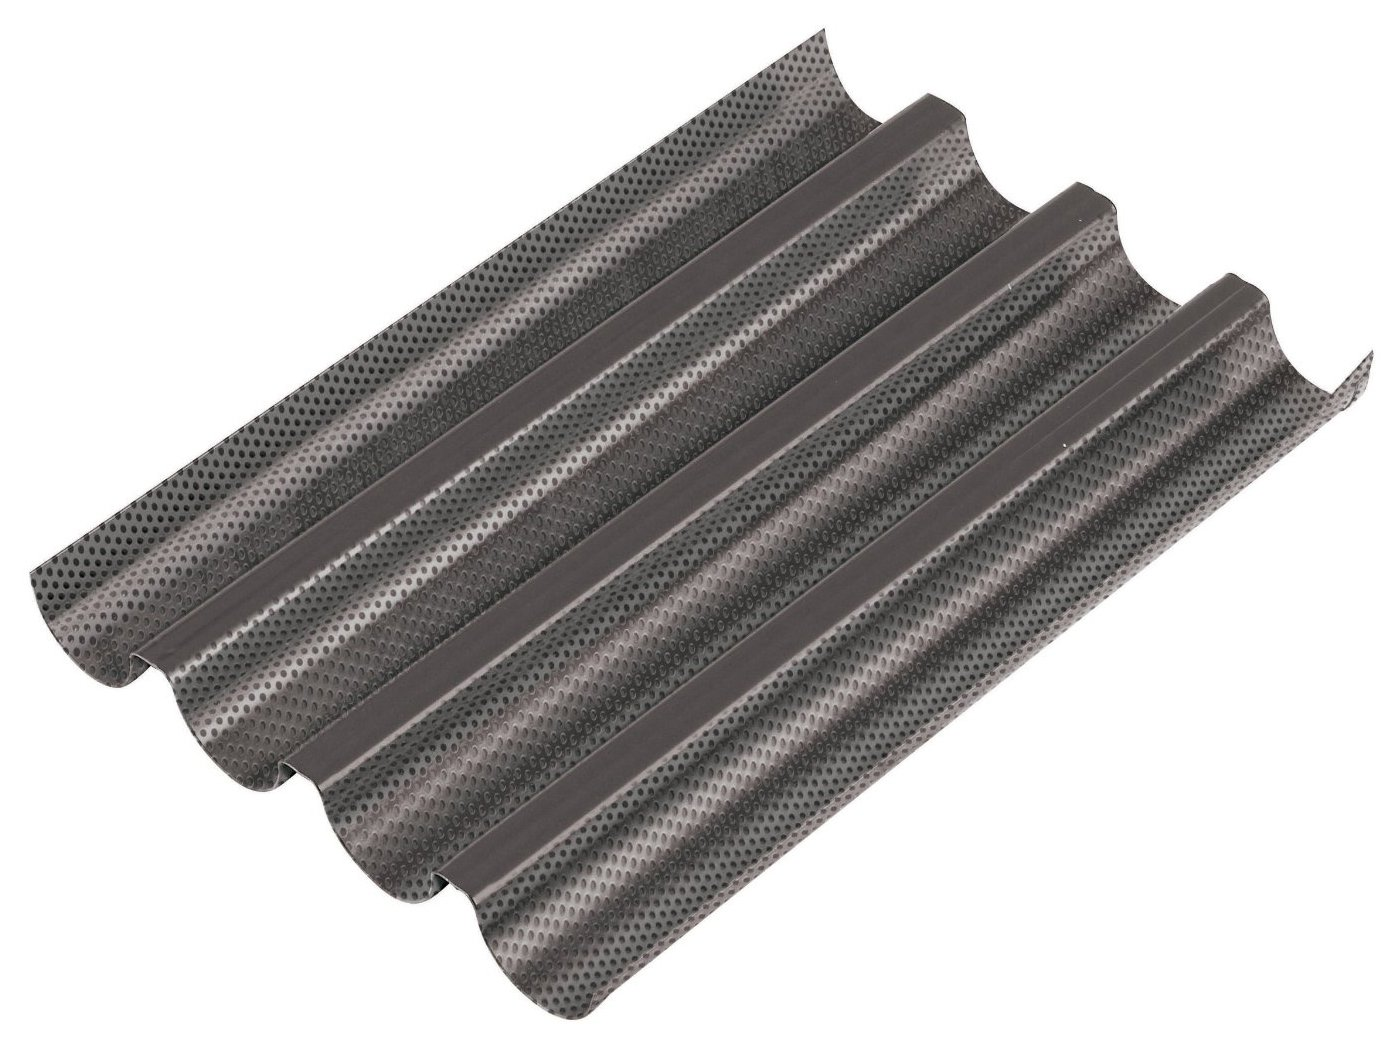 Matfer Bourgeat 311214 Spare Mesh for Fibermax Baking Tray